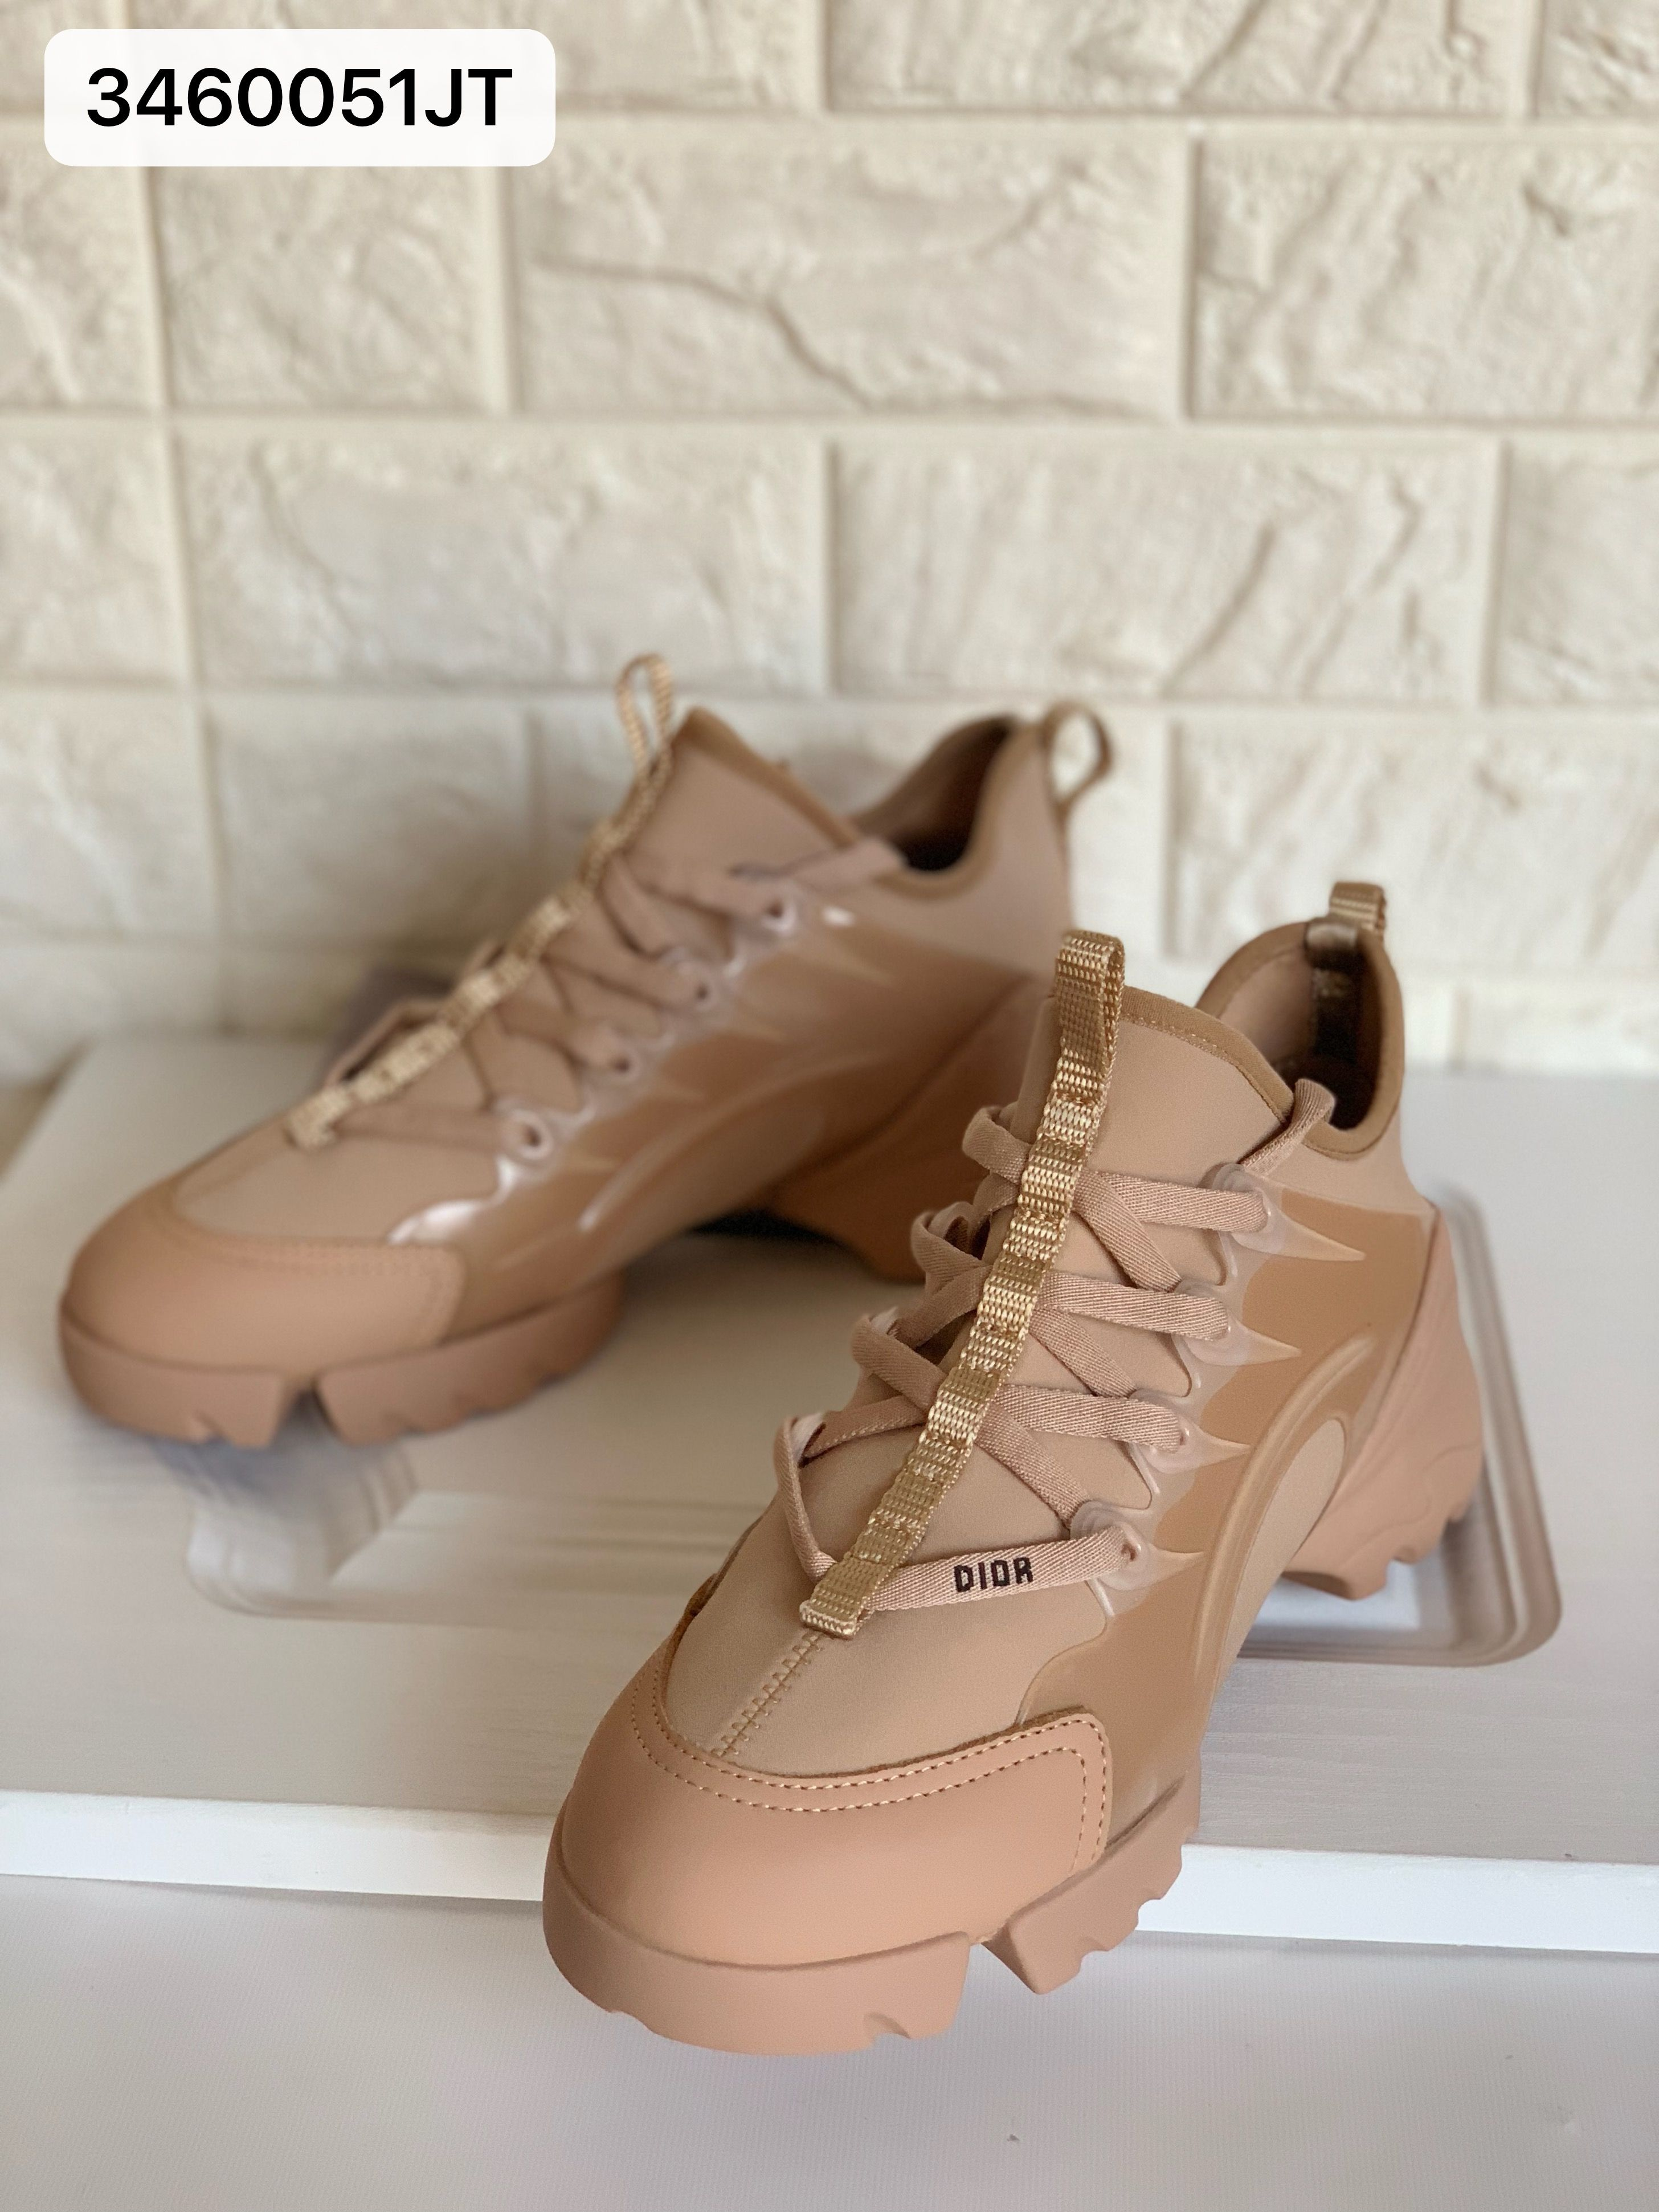 Christian Dior D-Connect sneakers sport